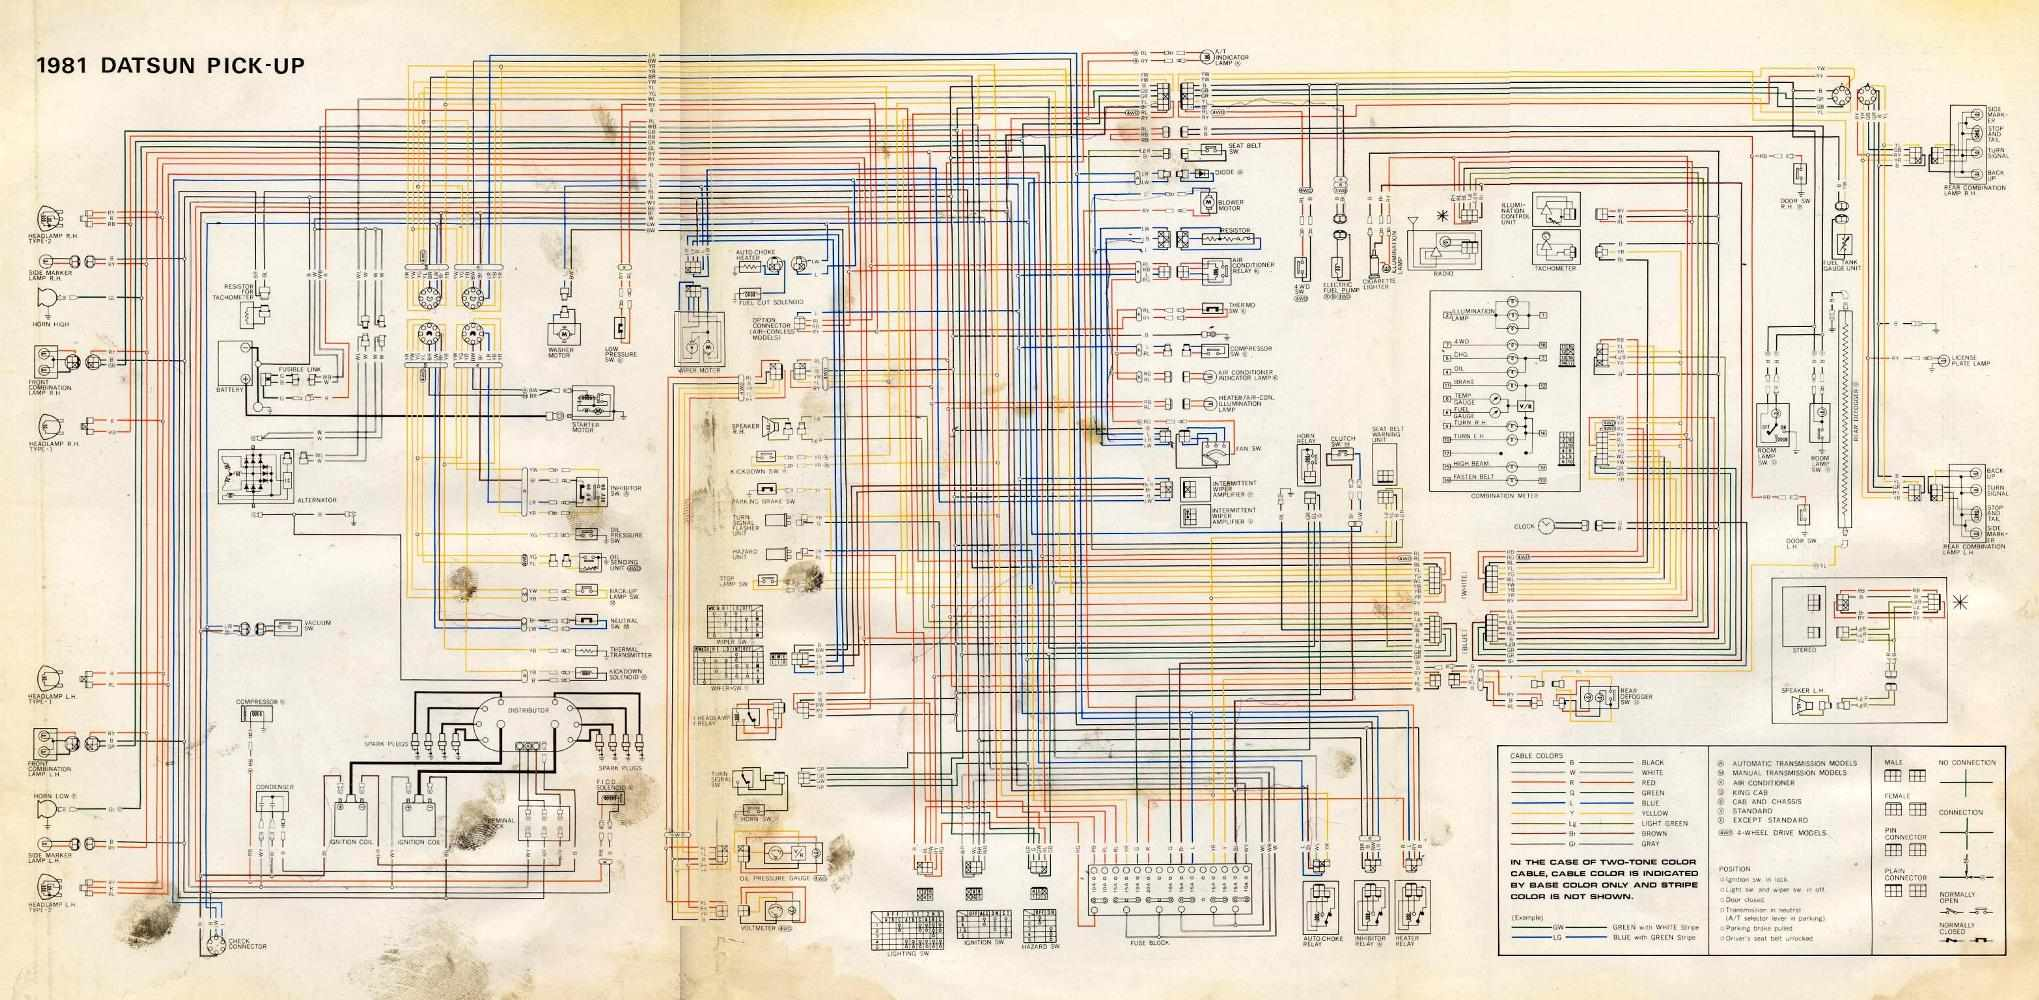 1982 Datsun 720 Wiring Diagram Trusted Diagrams 1983 Mustang Fuse Box Electricity Basics Diesel